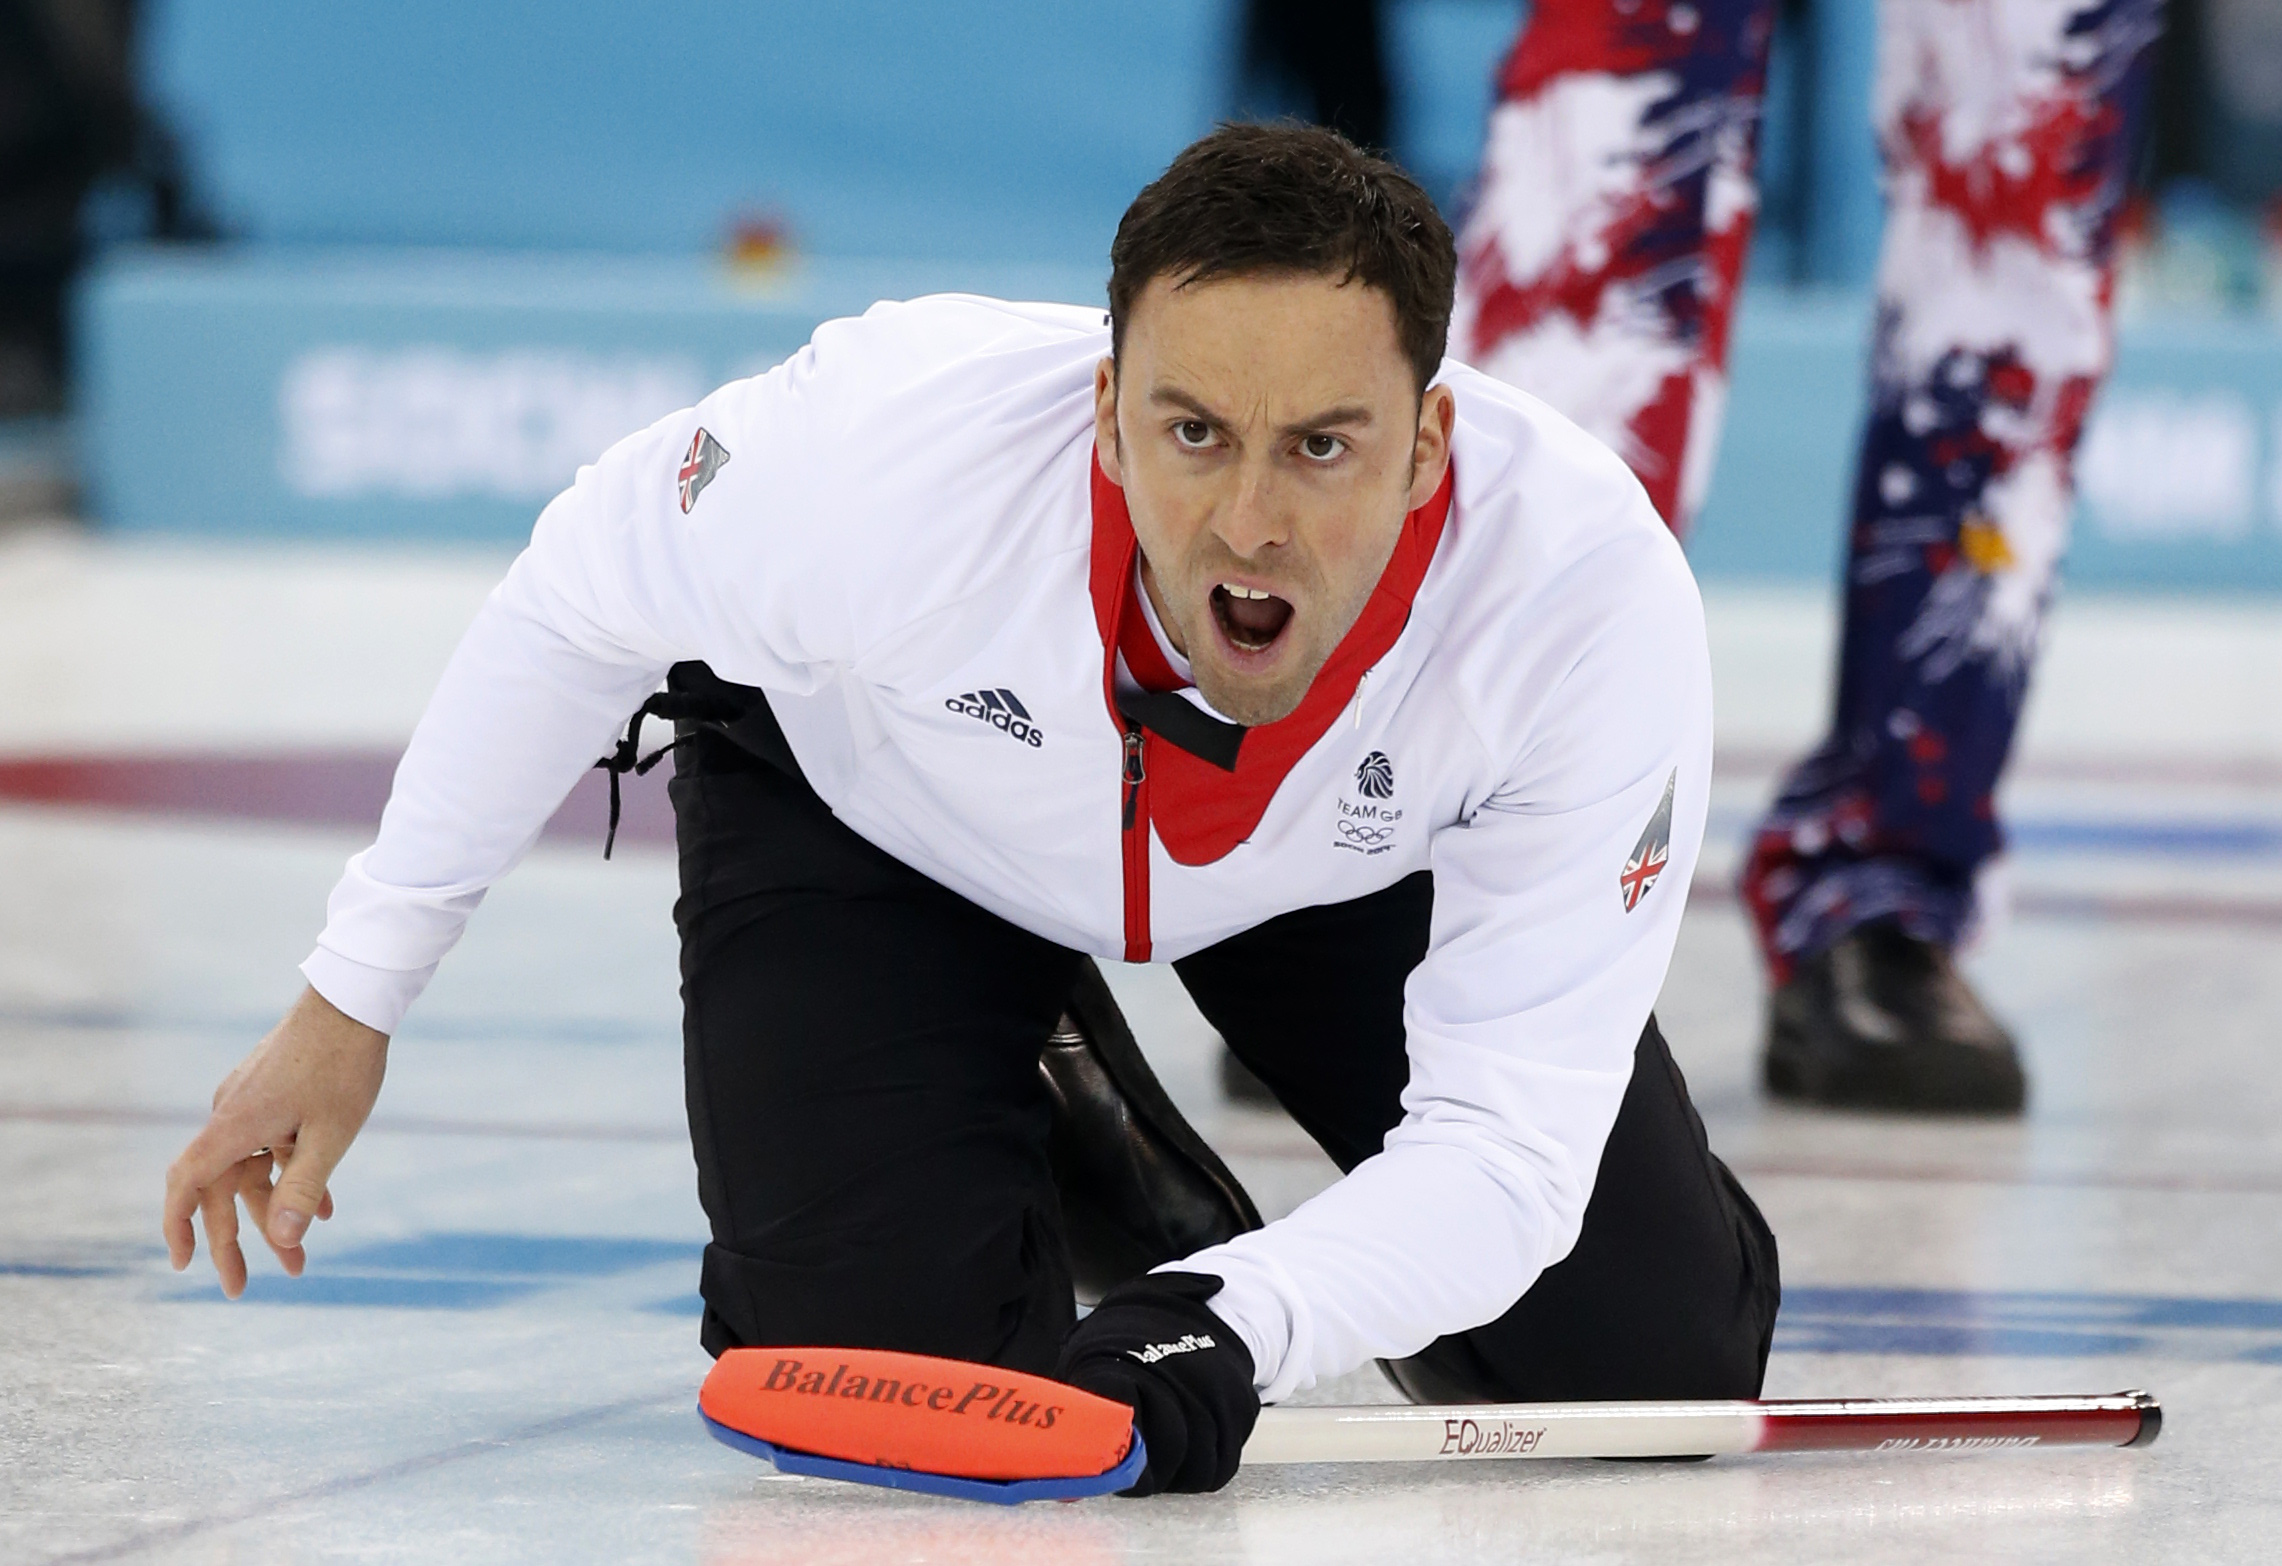 Britain's skip David Murdoch shouts instructions after delivering the stone during a tiebreaker game against Norway in men's curling competition against at the 2014 Winter Olympics, Tuesday, Feb. 18, 2014, in Sochi, Russia. (AP Photo/Robert F. Bukaty)